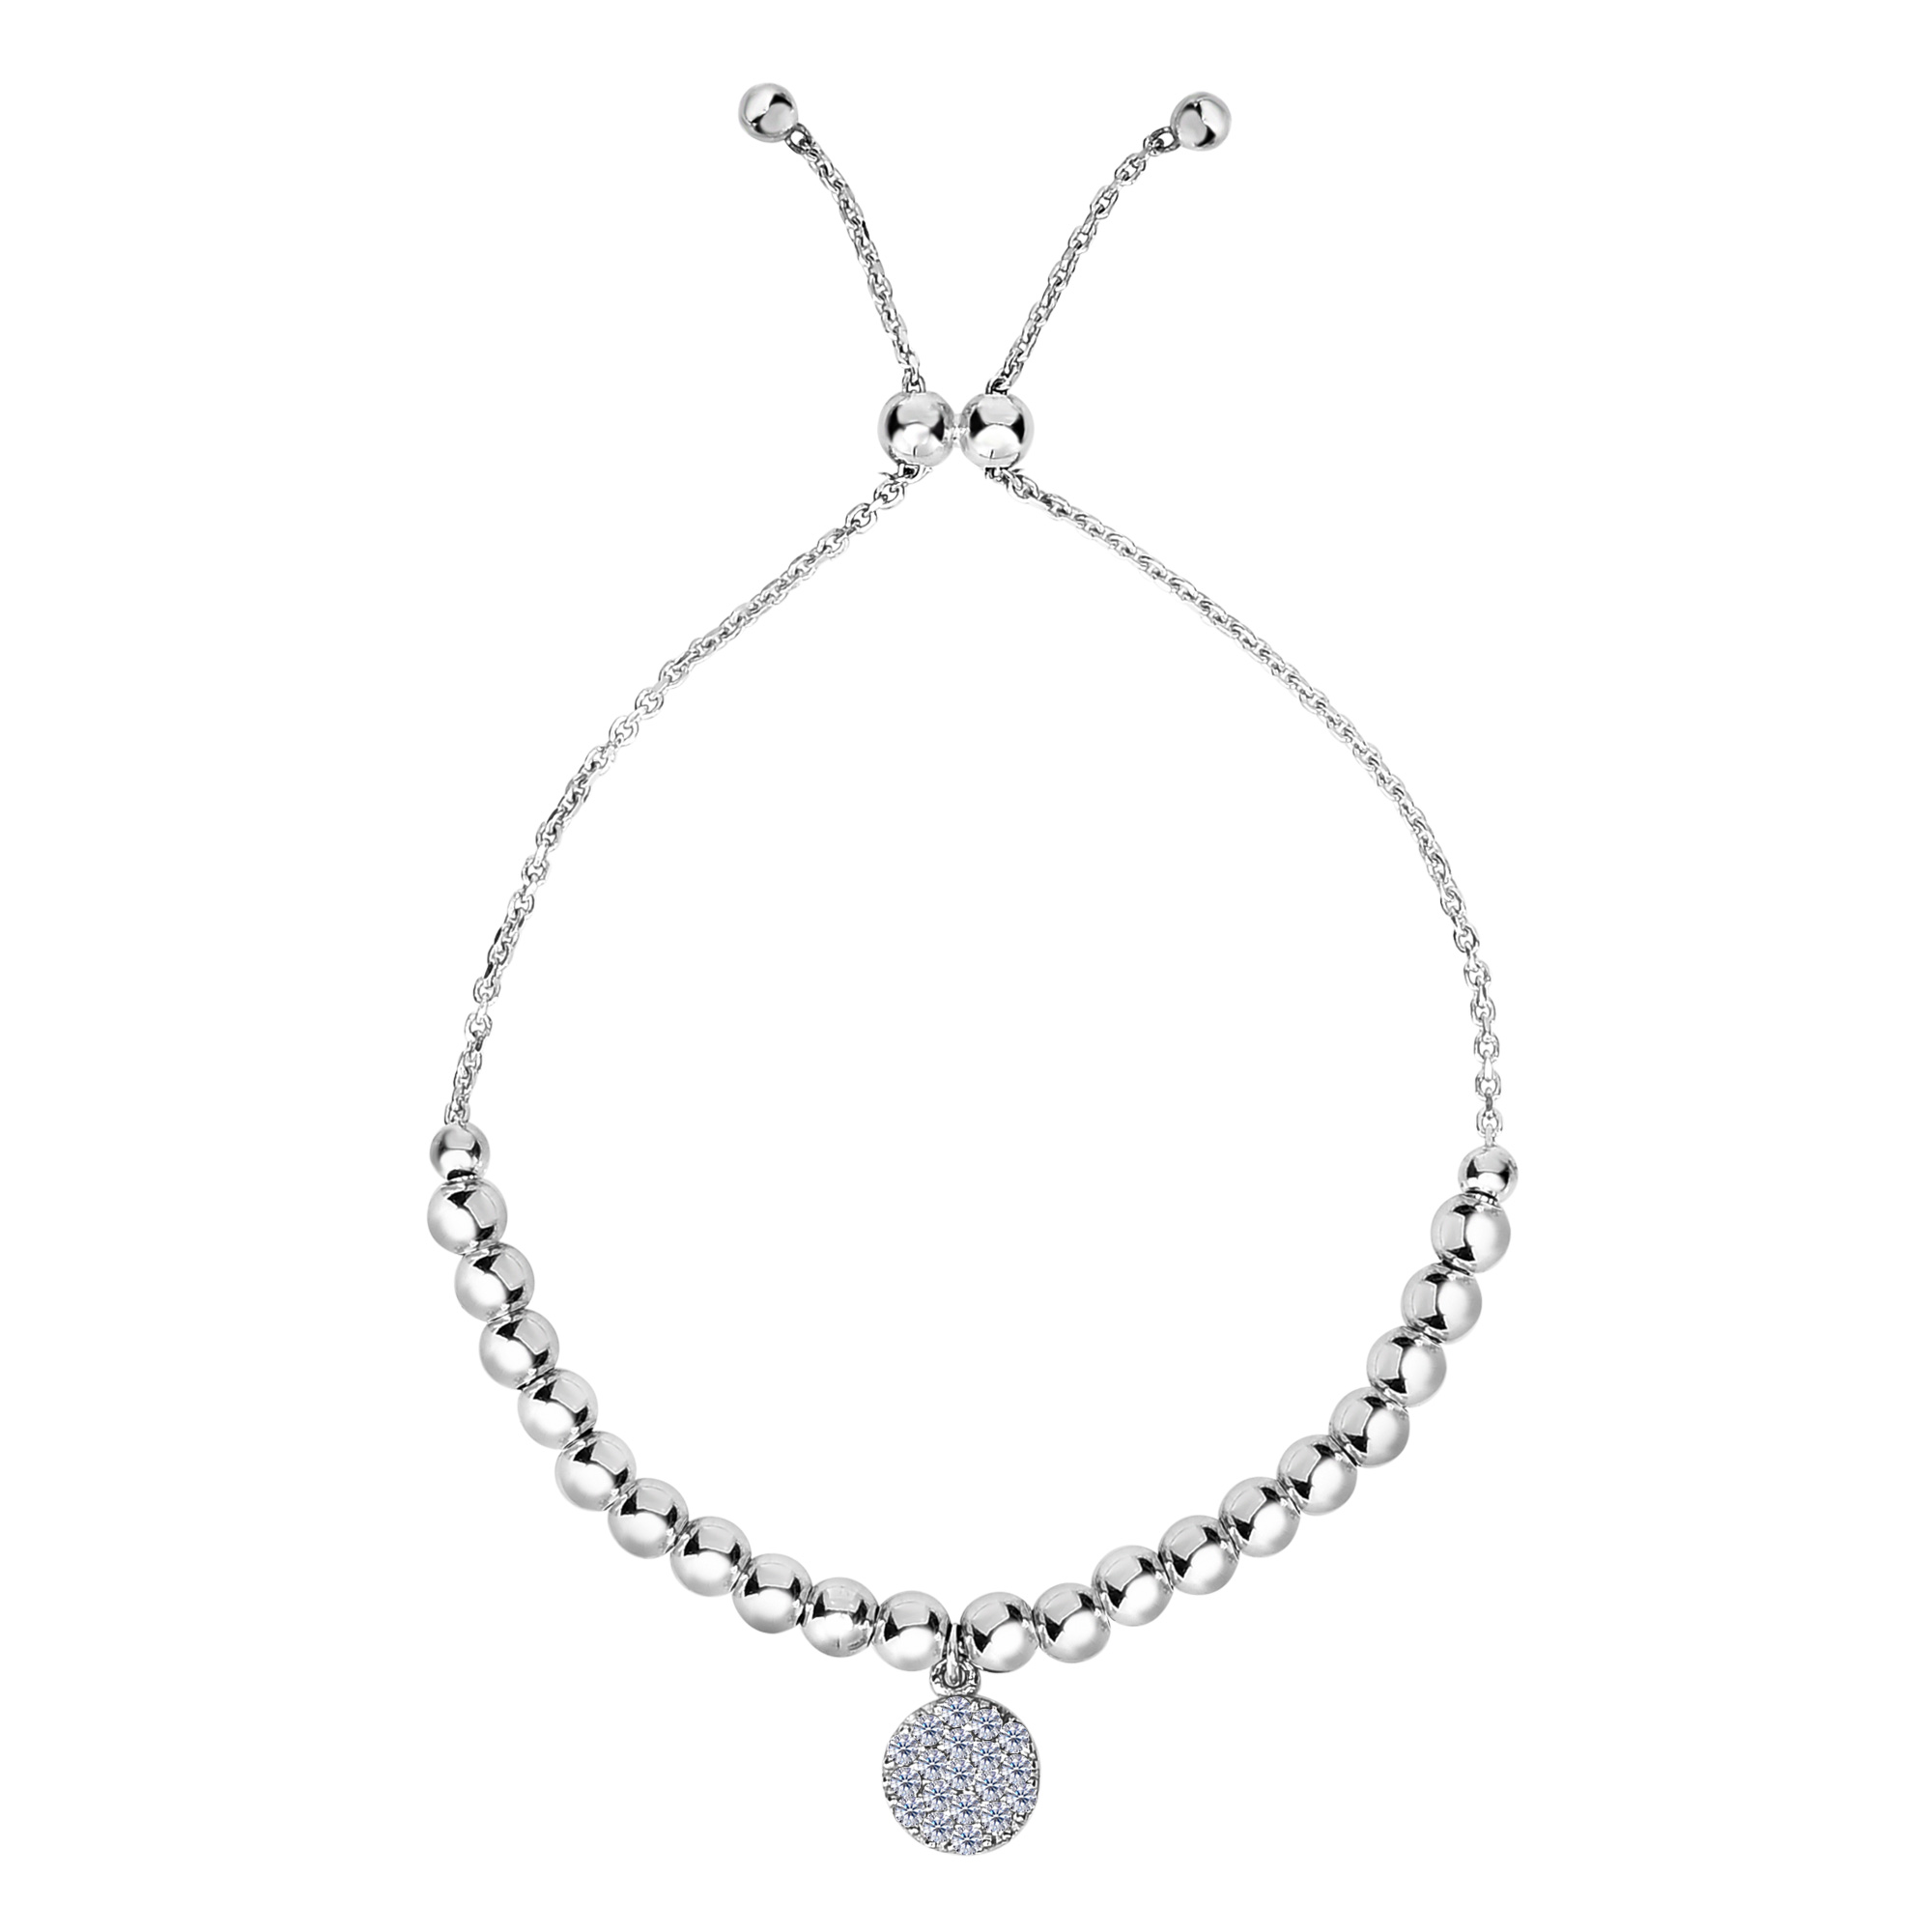 Sterling Silver Beads And CZ Charm Adjustable Bolo Friendship Bracelet , 9.25  Designed for today's fast-moving, contemporary woman, the Friendship bracelets are smart, stylish and easy to wear. Meticulously executed in high quality Rhodium plated sterling silver, these iconic bracelets are easily adjusted to fit any wrist. The Adjustable sliding closure allows you to go from 9.25 inches length to as small as allowed by the design.  Each unique style of our Friendship collection looks beautiful worn as one piece alone or stacked with multiple styles for a layered and modern look. The bracelet comes in an elegant jewelry gift box, perfect for any gift giving occasion.